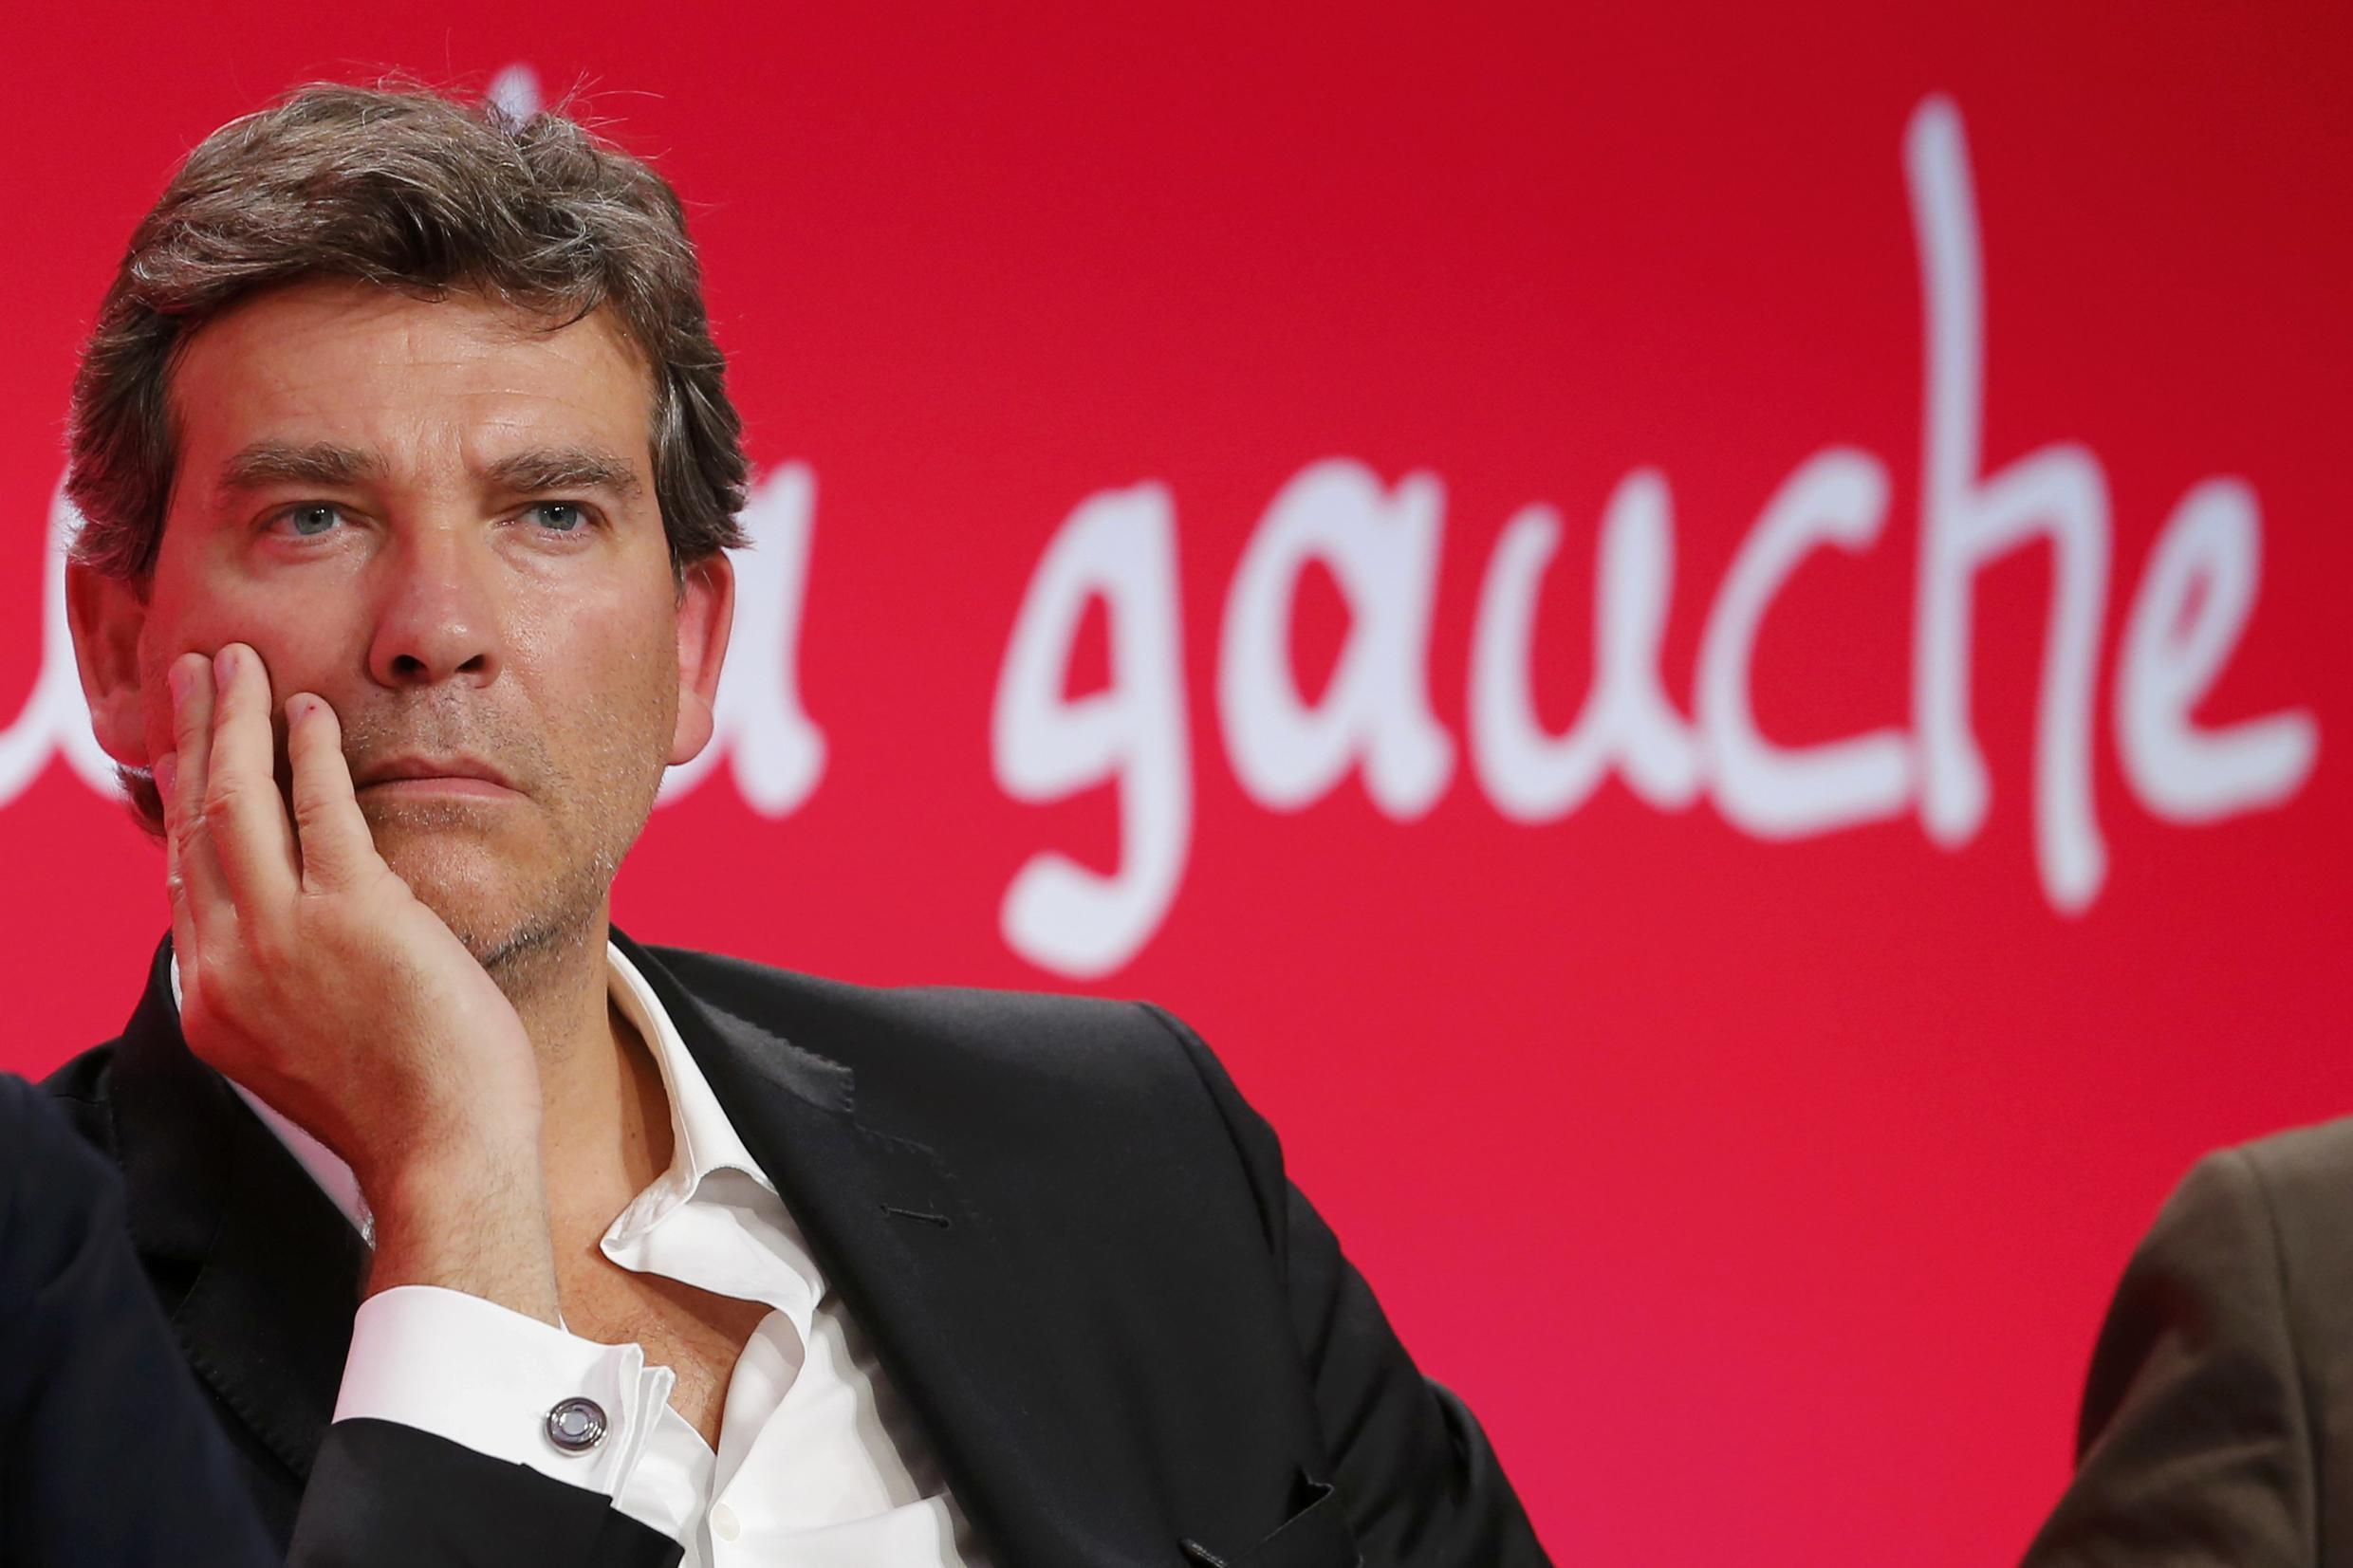 File photo of French politician Arnaud Montebourg, who announced his candidacy for the 2017 French presidential election.